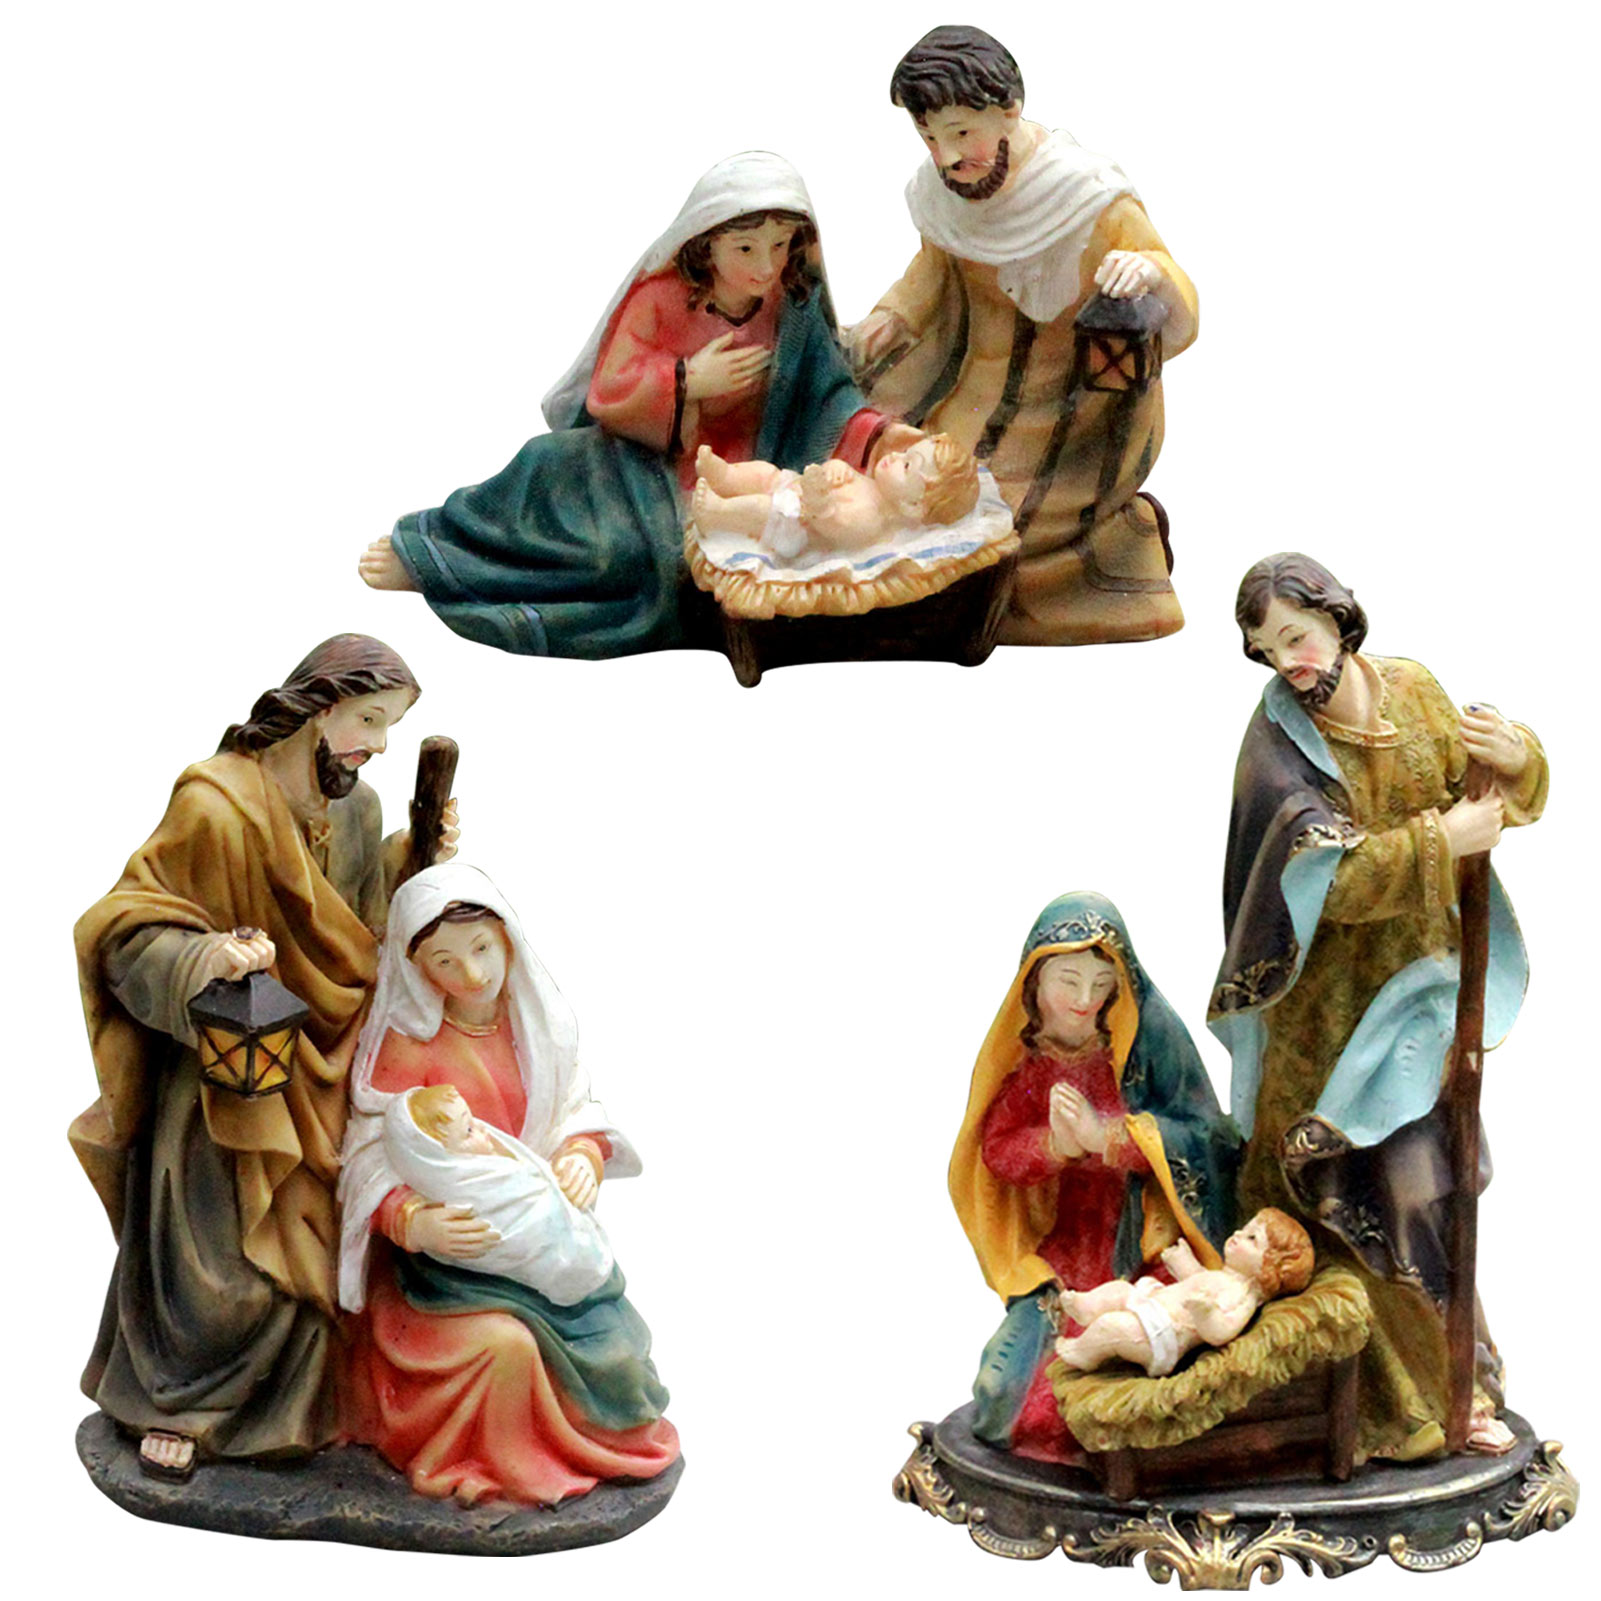 Nativity Statue Scene Set Baby Jesus Manger Christmas Crib Figurines Miniatures Ornament Church Gift Home Decoration Products Are Sold Without Limitations